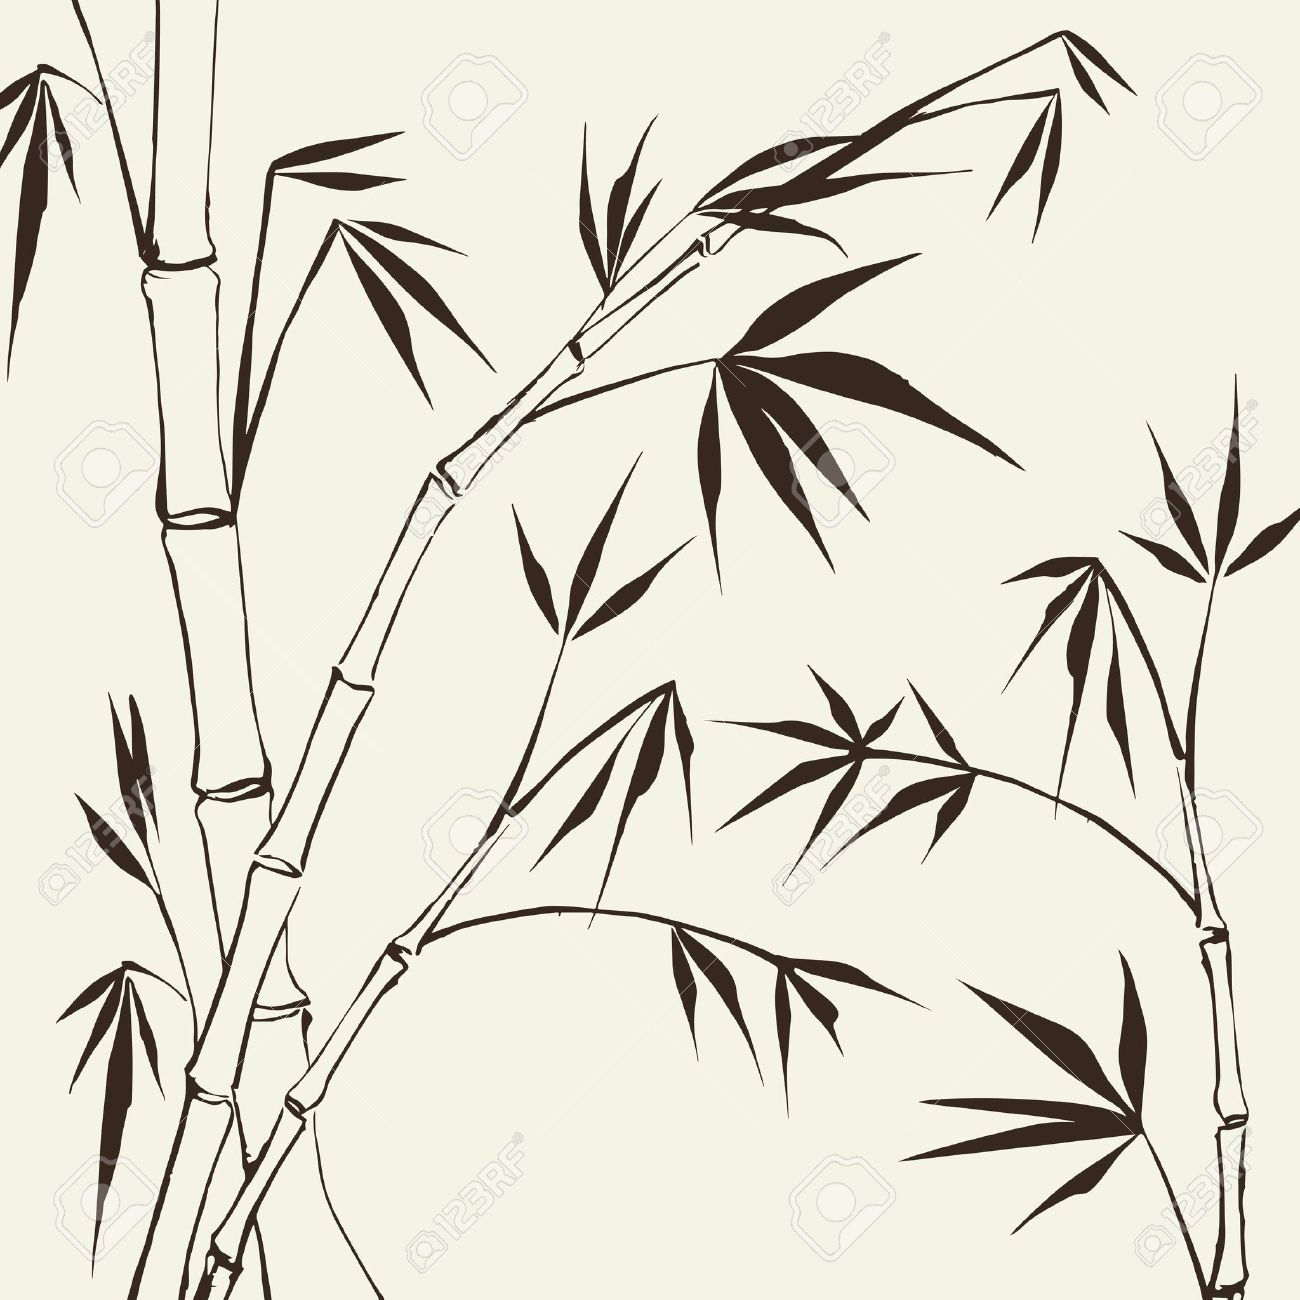 Bamboo Painting Vector illustration, contains transparencies, gradients and effects - 18737915